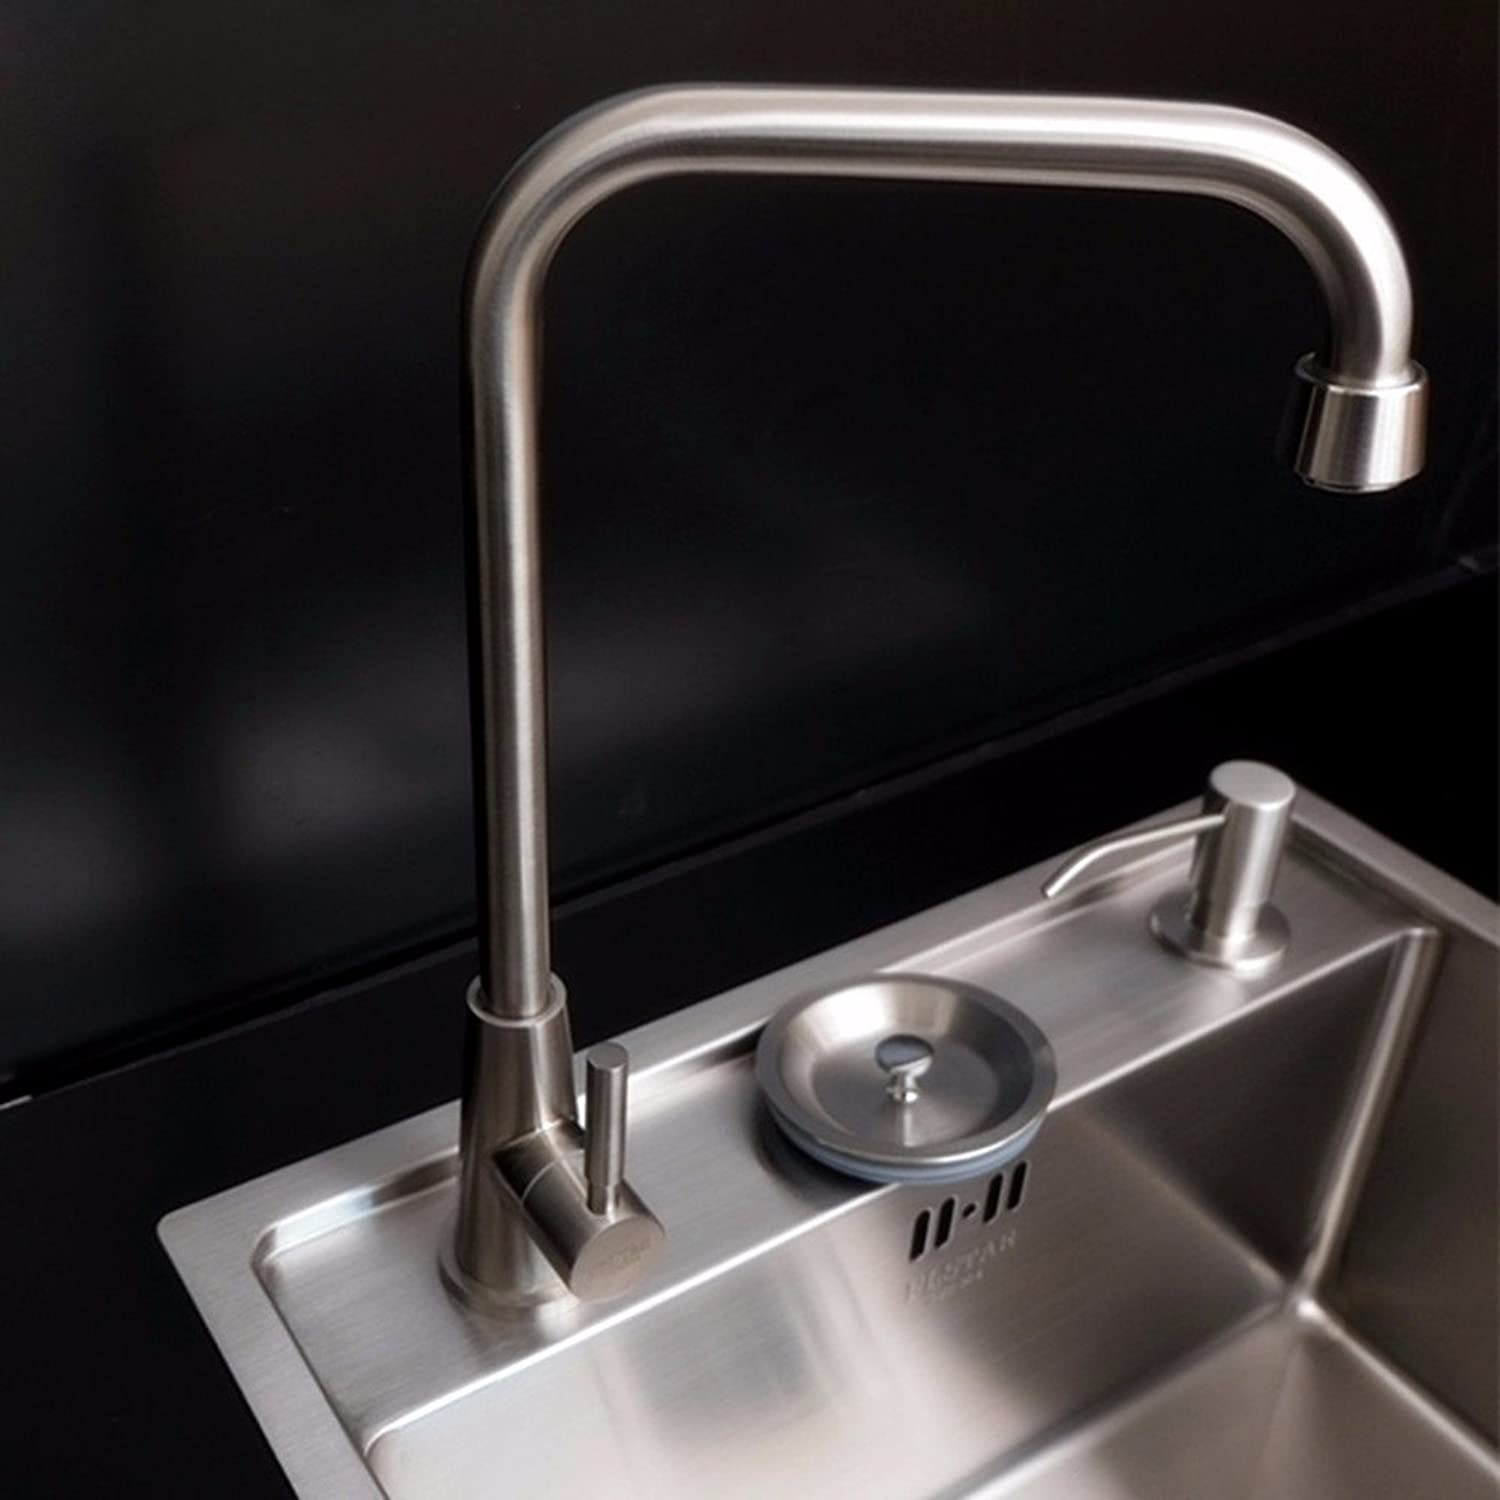 Commercial Single Lever Pull Down Kitchen Sink Faucet Brass Constructed Polished Stainless Steel Kitchen Faucet, Balcony Single Cold Faucet, redating Single Handle Single Hole Faucet